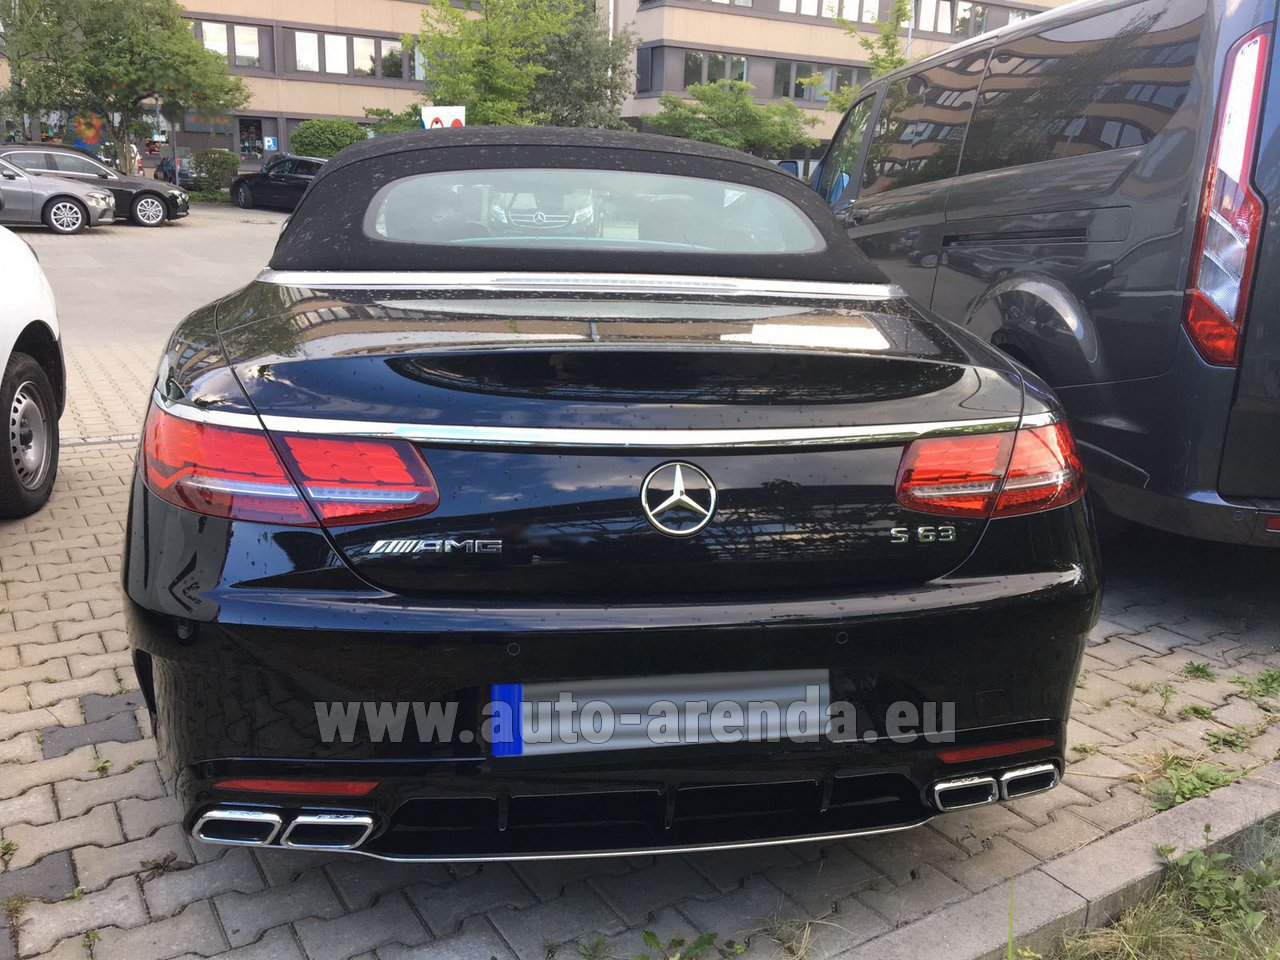 Sanary sur mer mercedes benz s 63 amg cabriolet v8 biturbo for Mercedes benz s63 amg biturbo